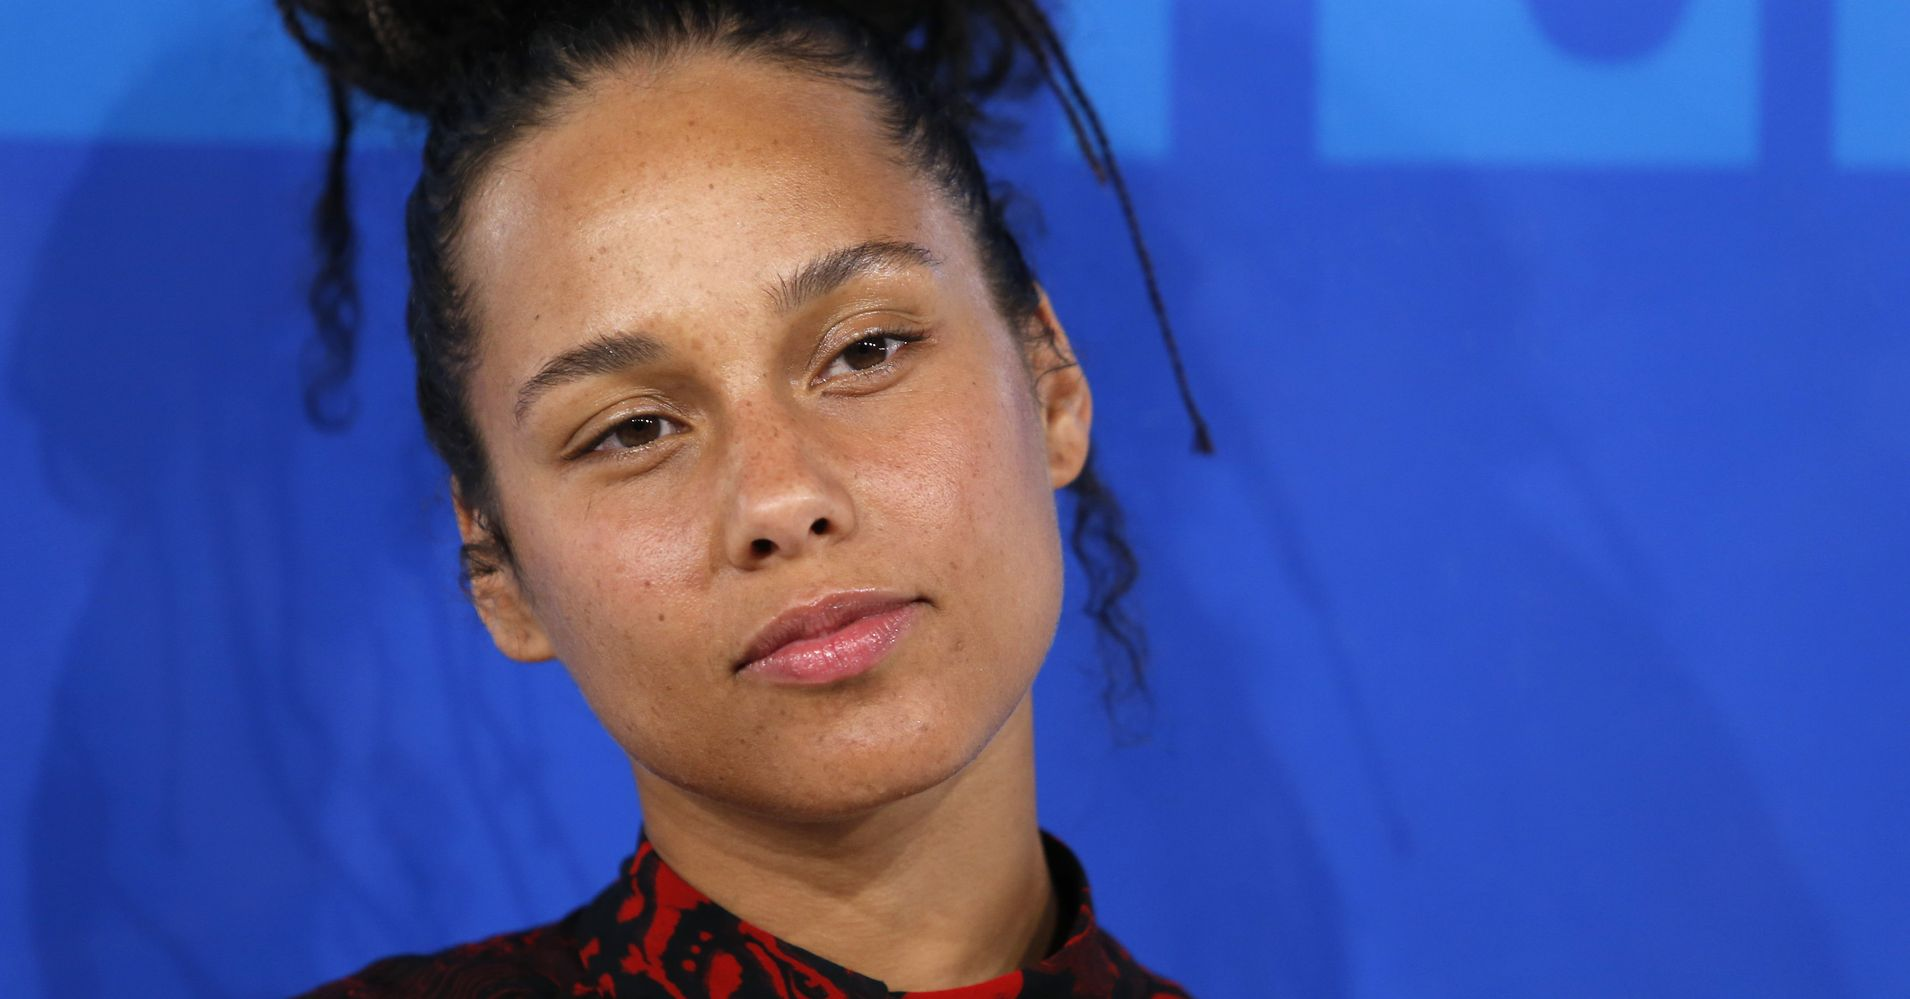 Don't Use Alicia Keys' Bare Face To Shame Women Who Wear Makeup | HuffPost